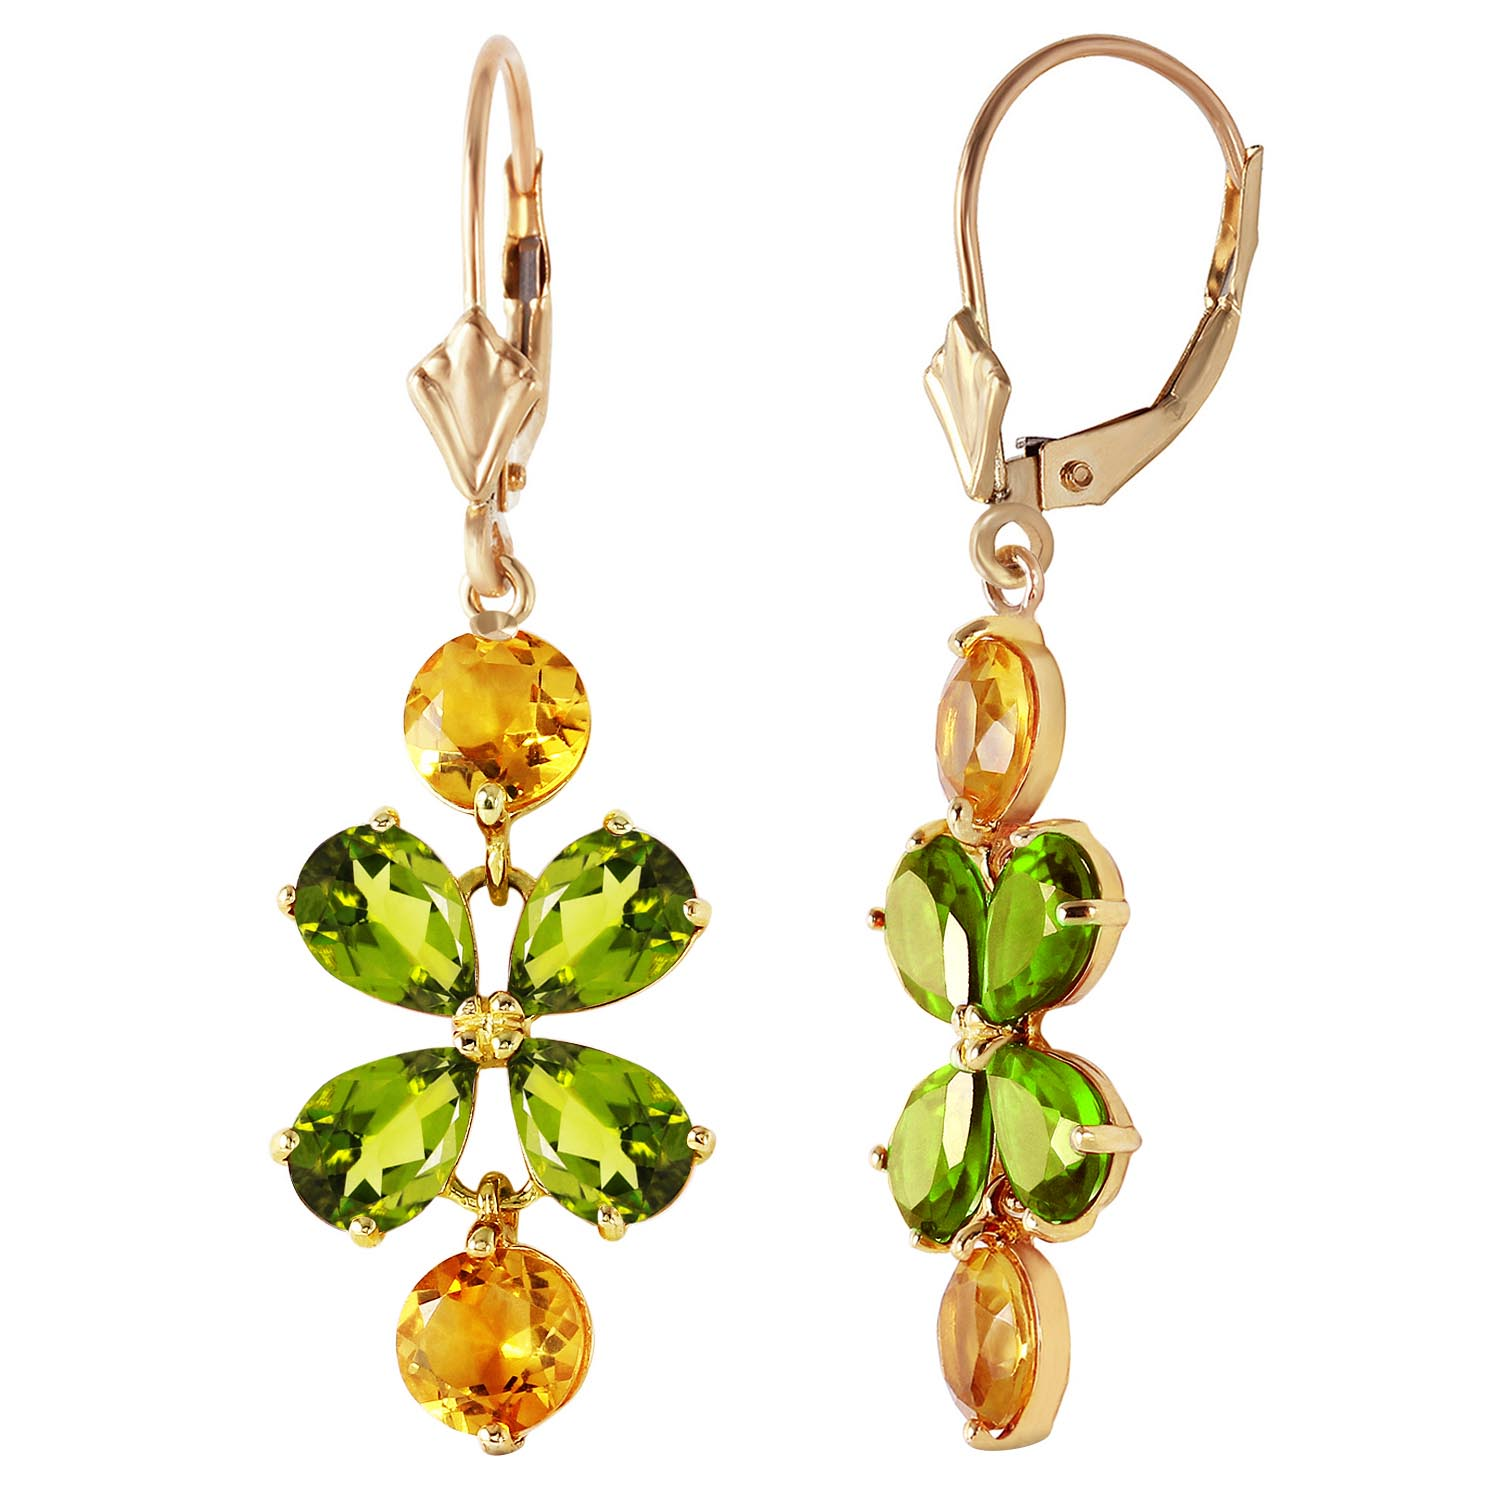 Peridot and Citrine Blossom Drop Earrings 5.32ctw in 9ct Gold